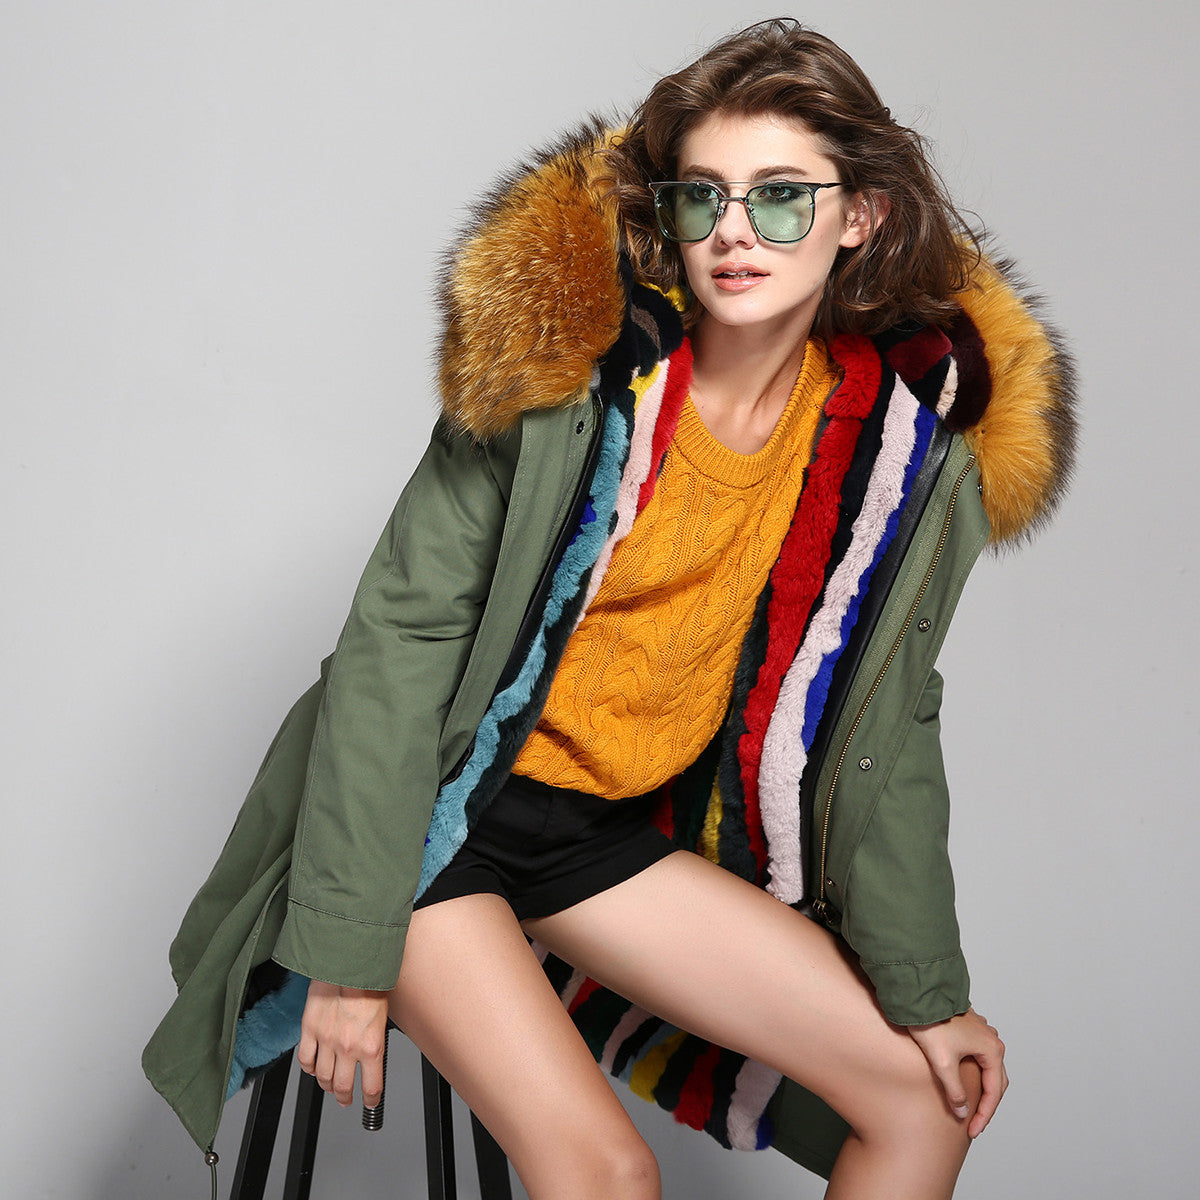 Fashion Women Raccoon Rabbit Fur Coat - All In One Place With Us - 7